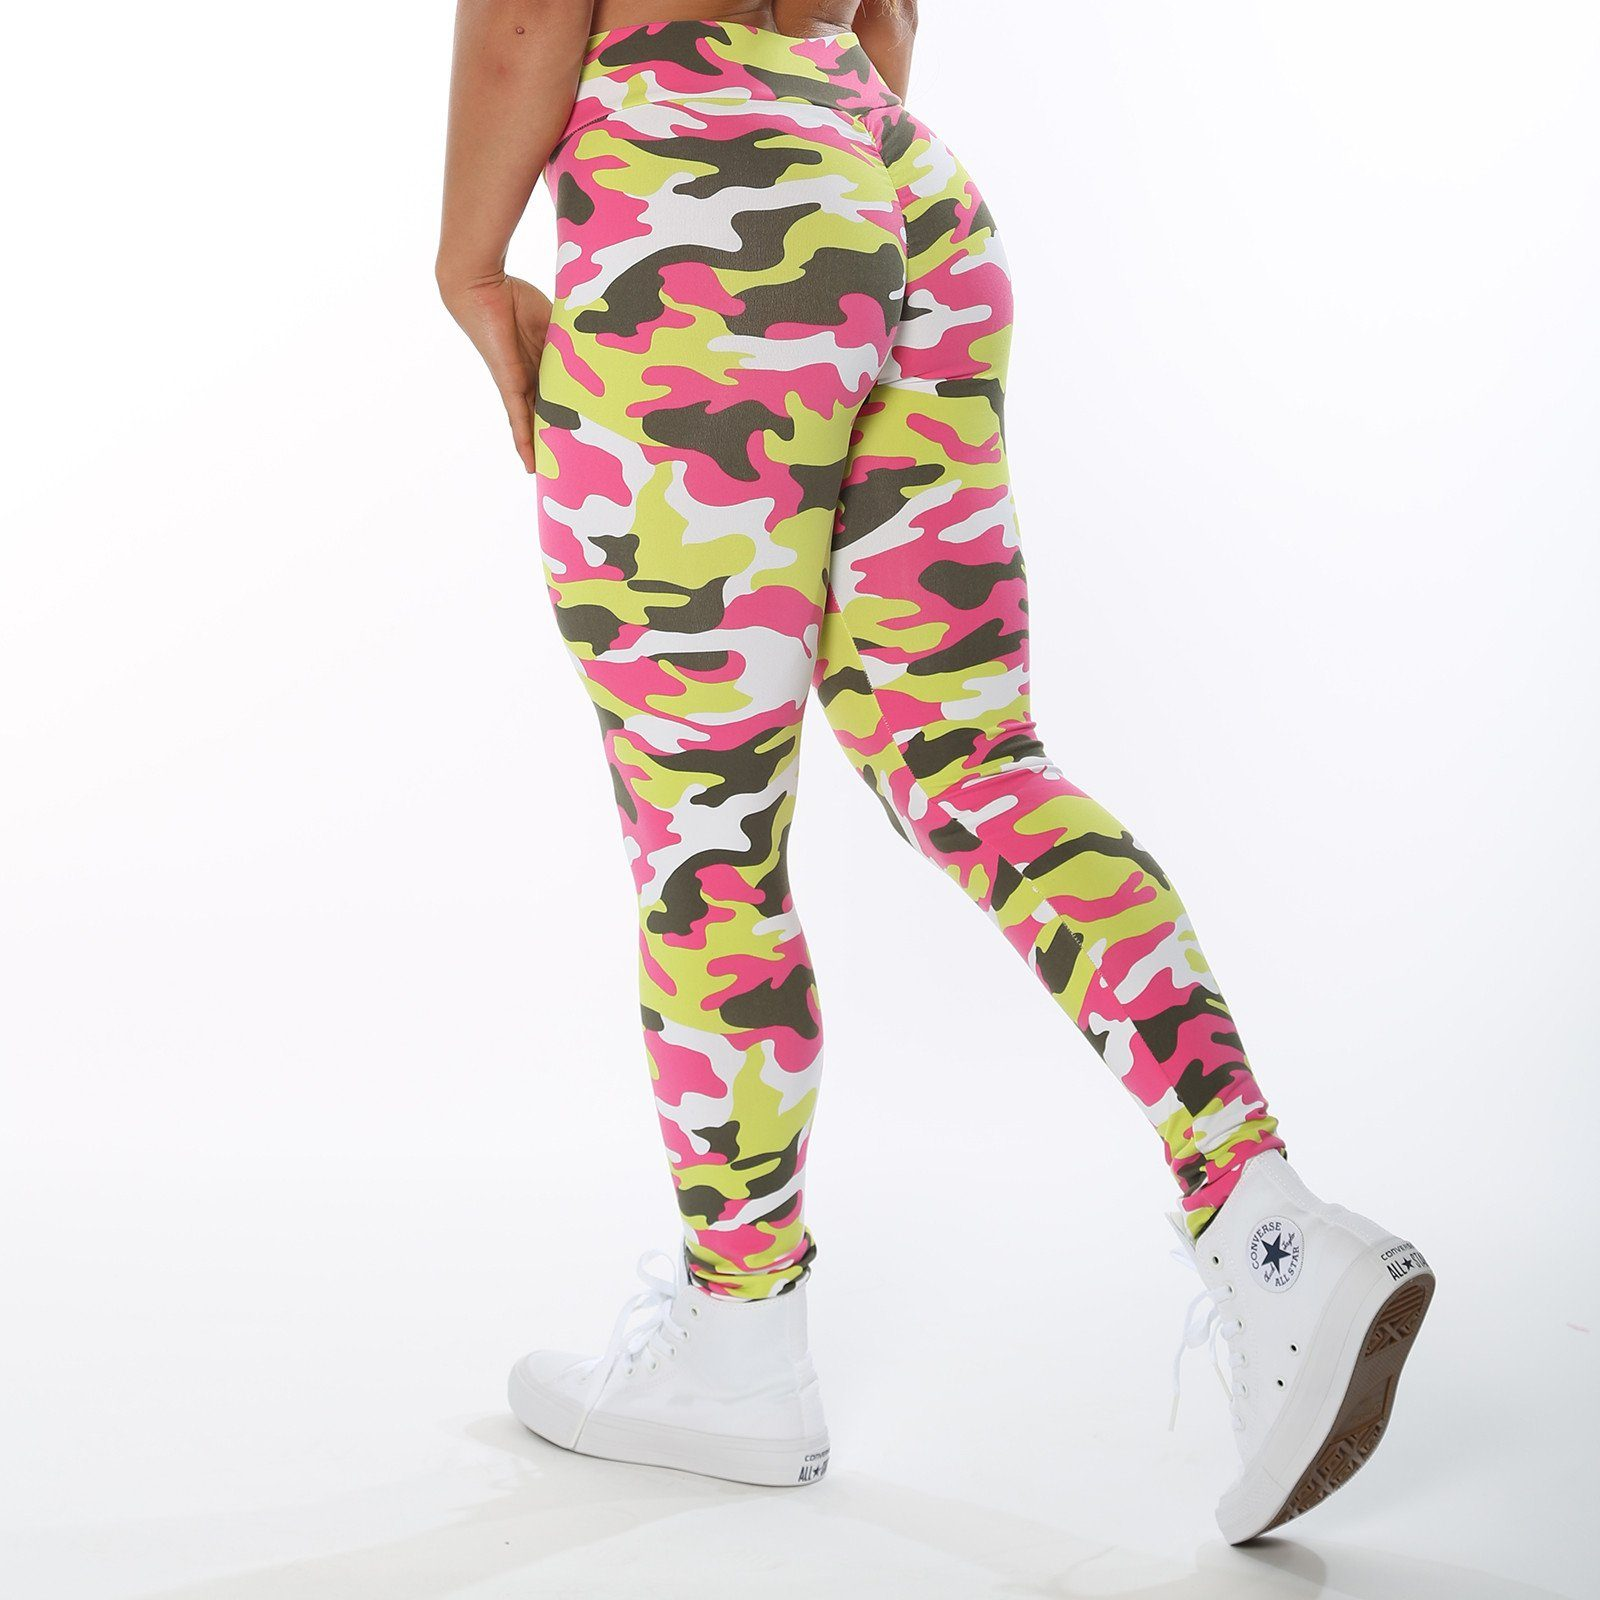 V-Cut Tropic Camo Leggings